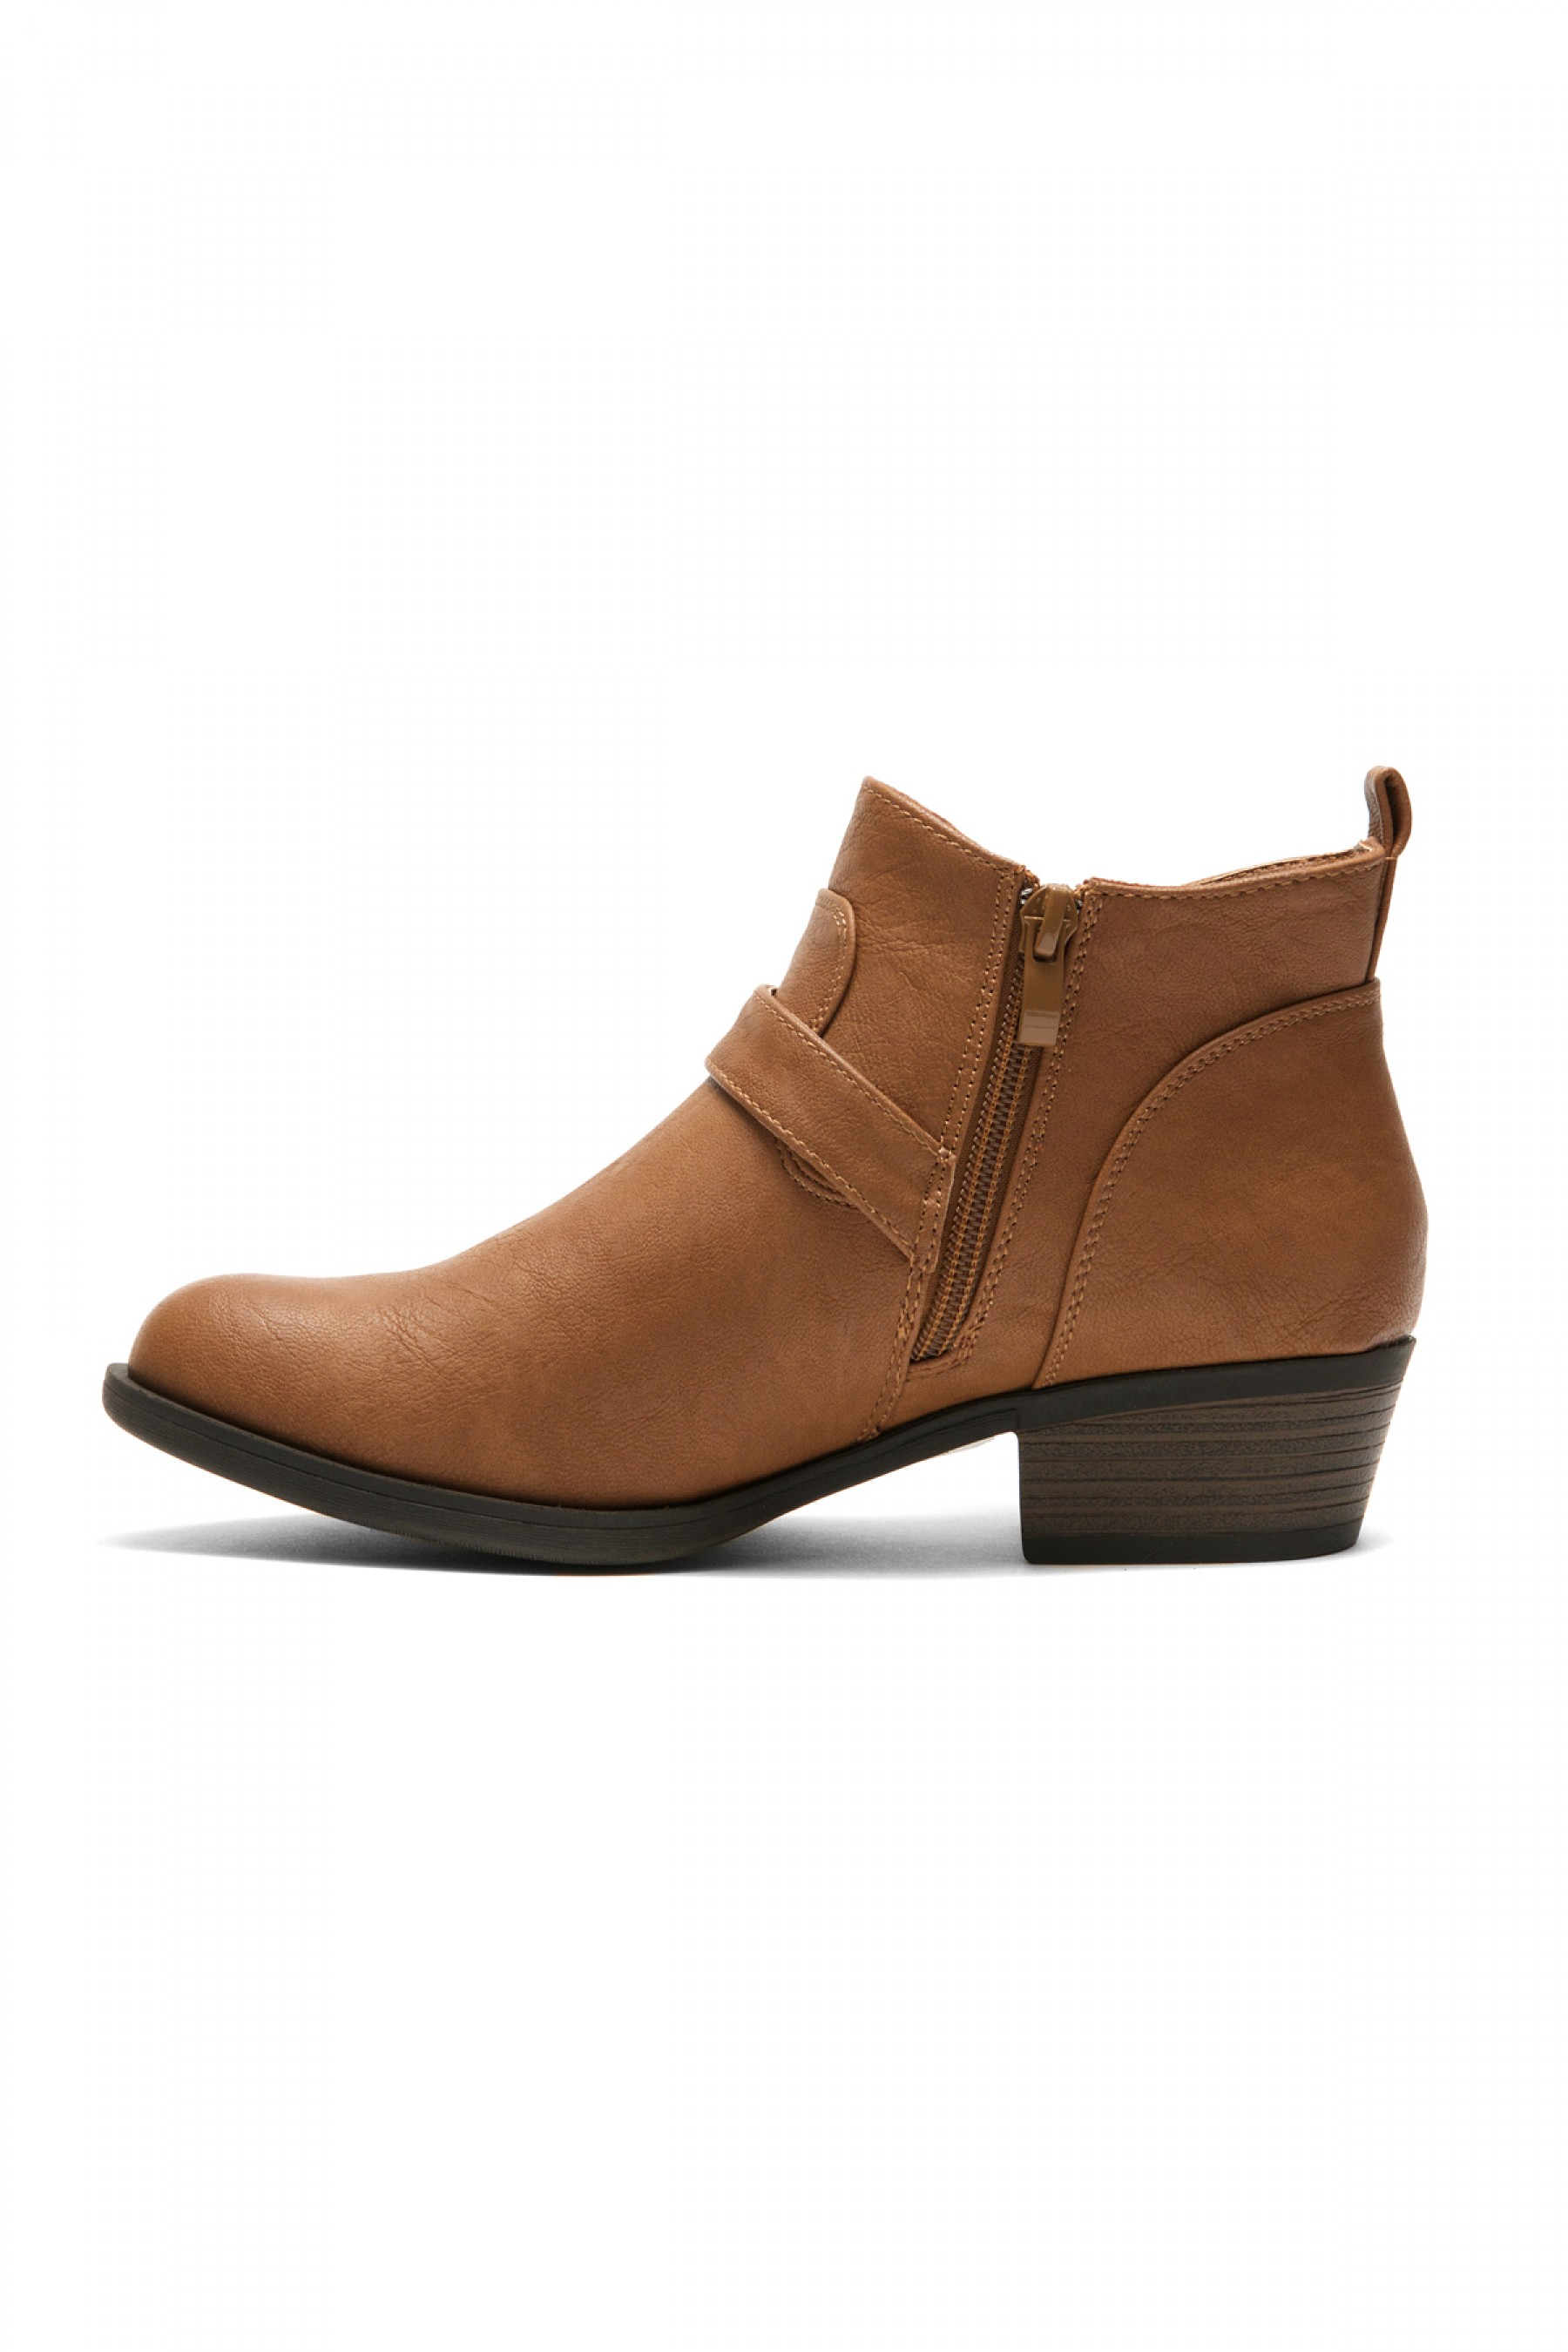 Women S Cognac Raavver Basel Boot Fashionable Stacked Heels Buckle Strapped Western Ankle Cow